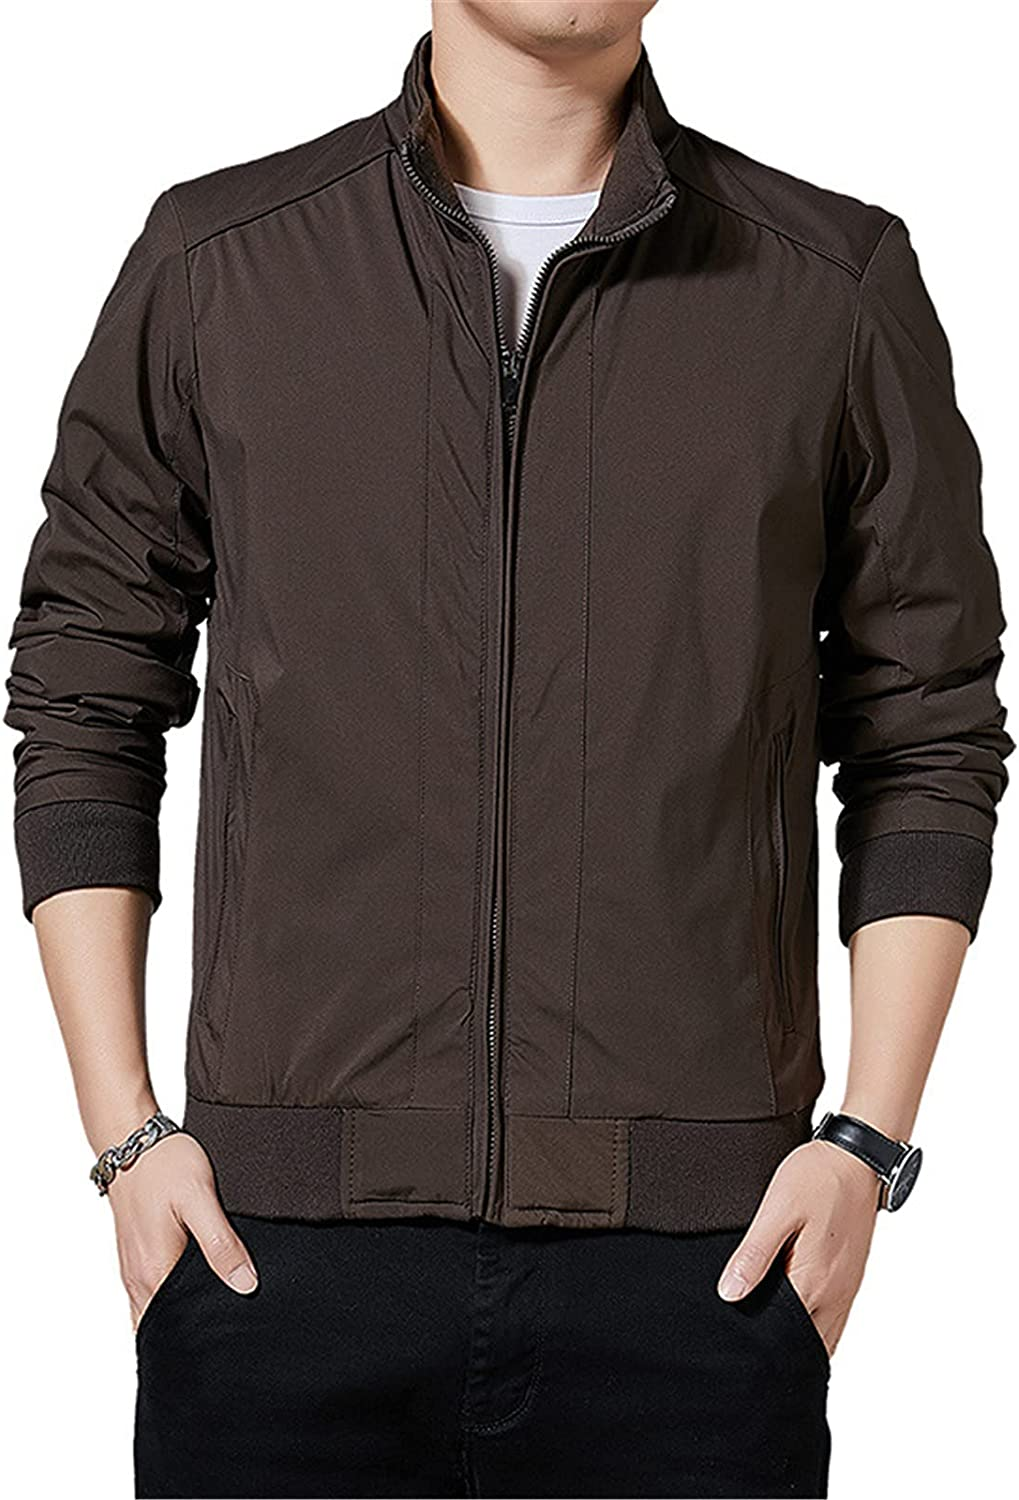 Men's Stand-Up Collar Business Jacket,Pure Color Simple Coat, for Leisure, Work, Outing, Daily Wear